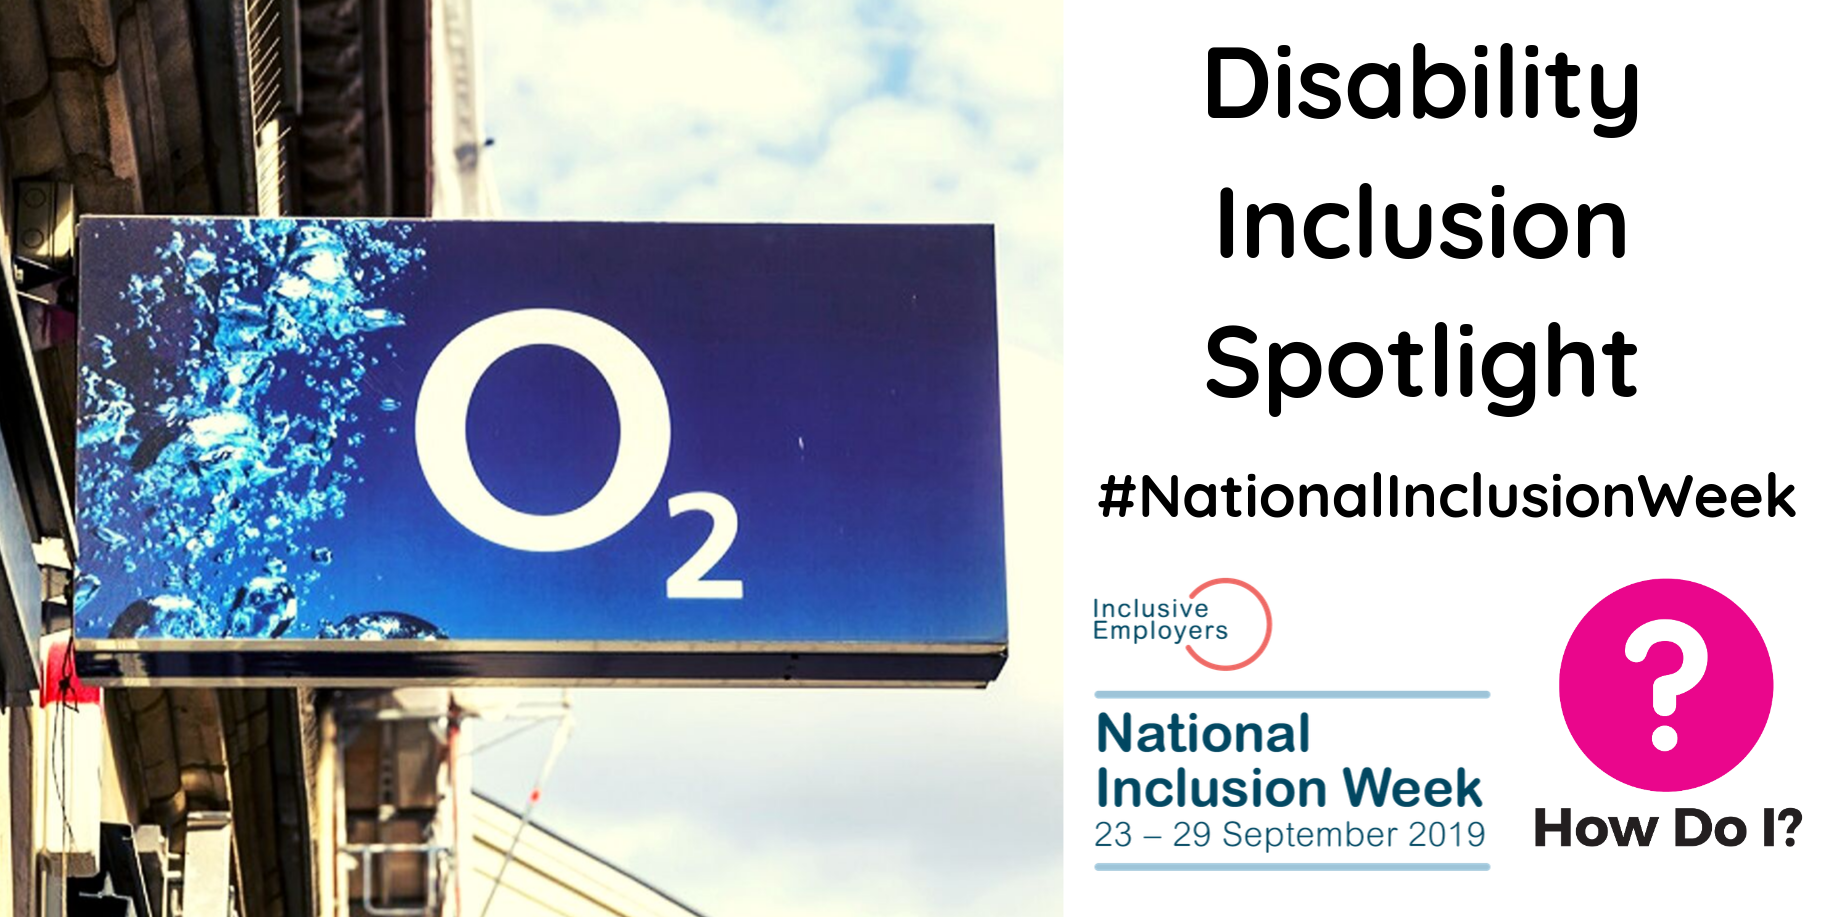 Disability inclusion spotlight for #National Inclusion Week - pictured is the 02 shop sign